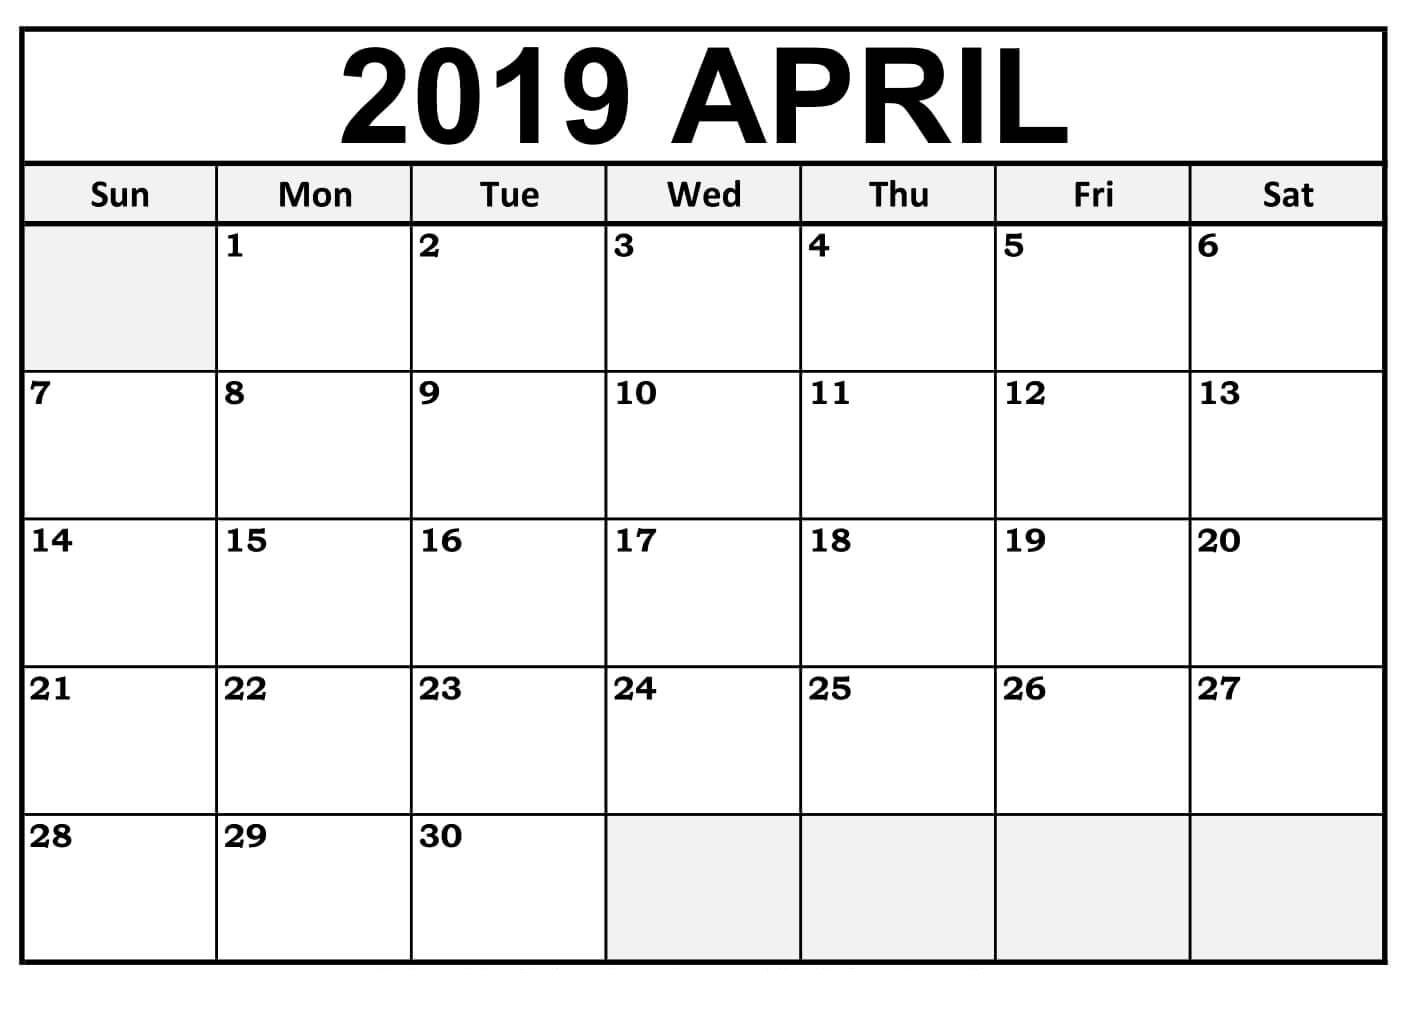 Lunar Calendar For April 2019 Printable Pdf Blank Download in 2019 Free Printable Calendars Without Downloading